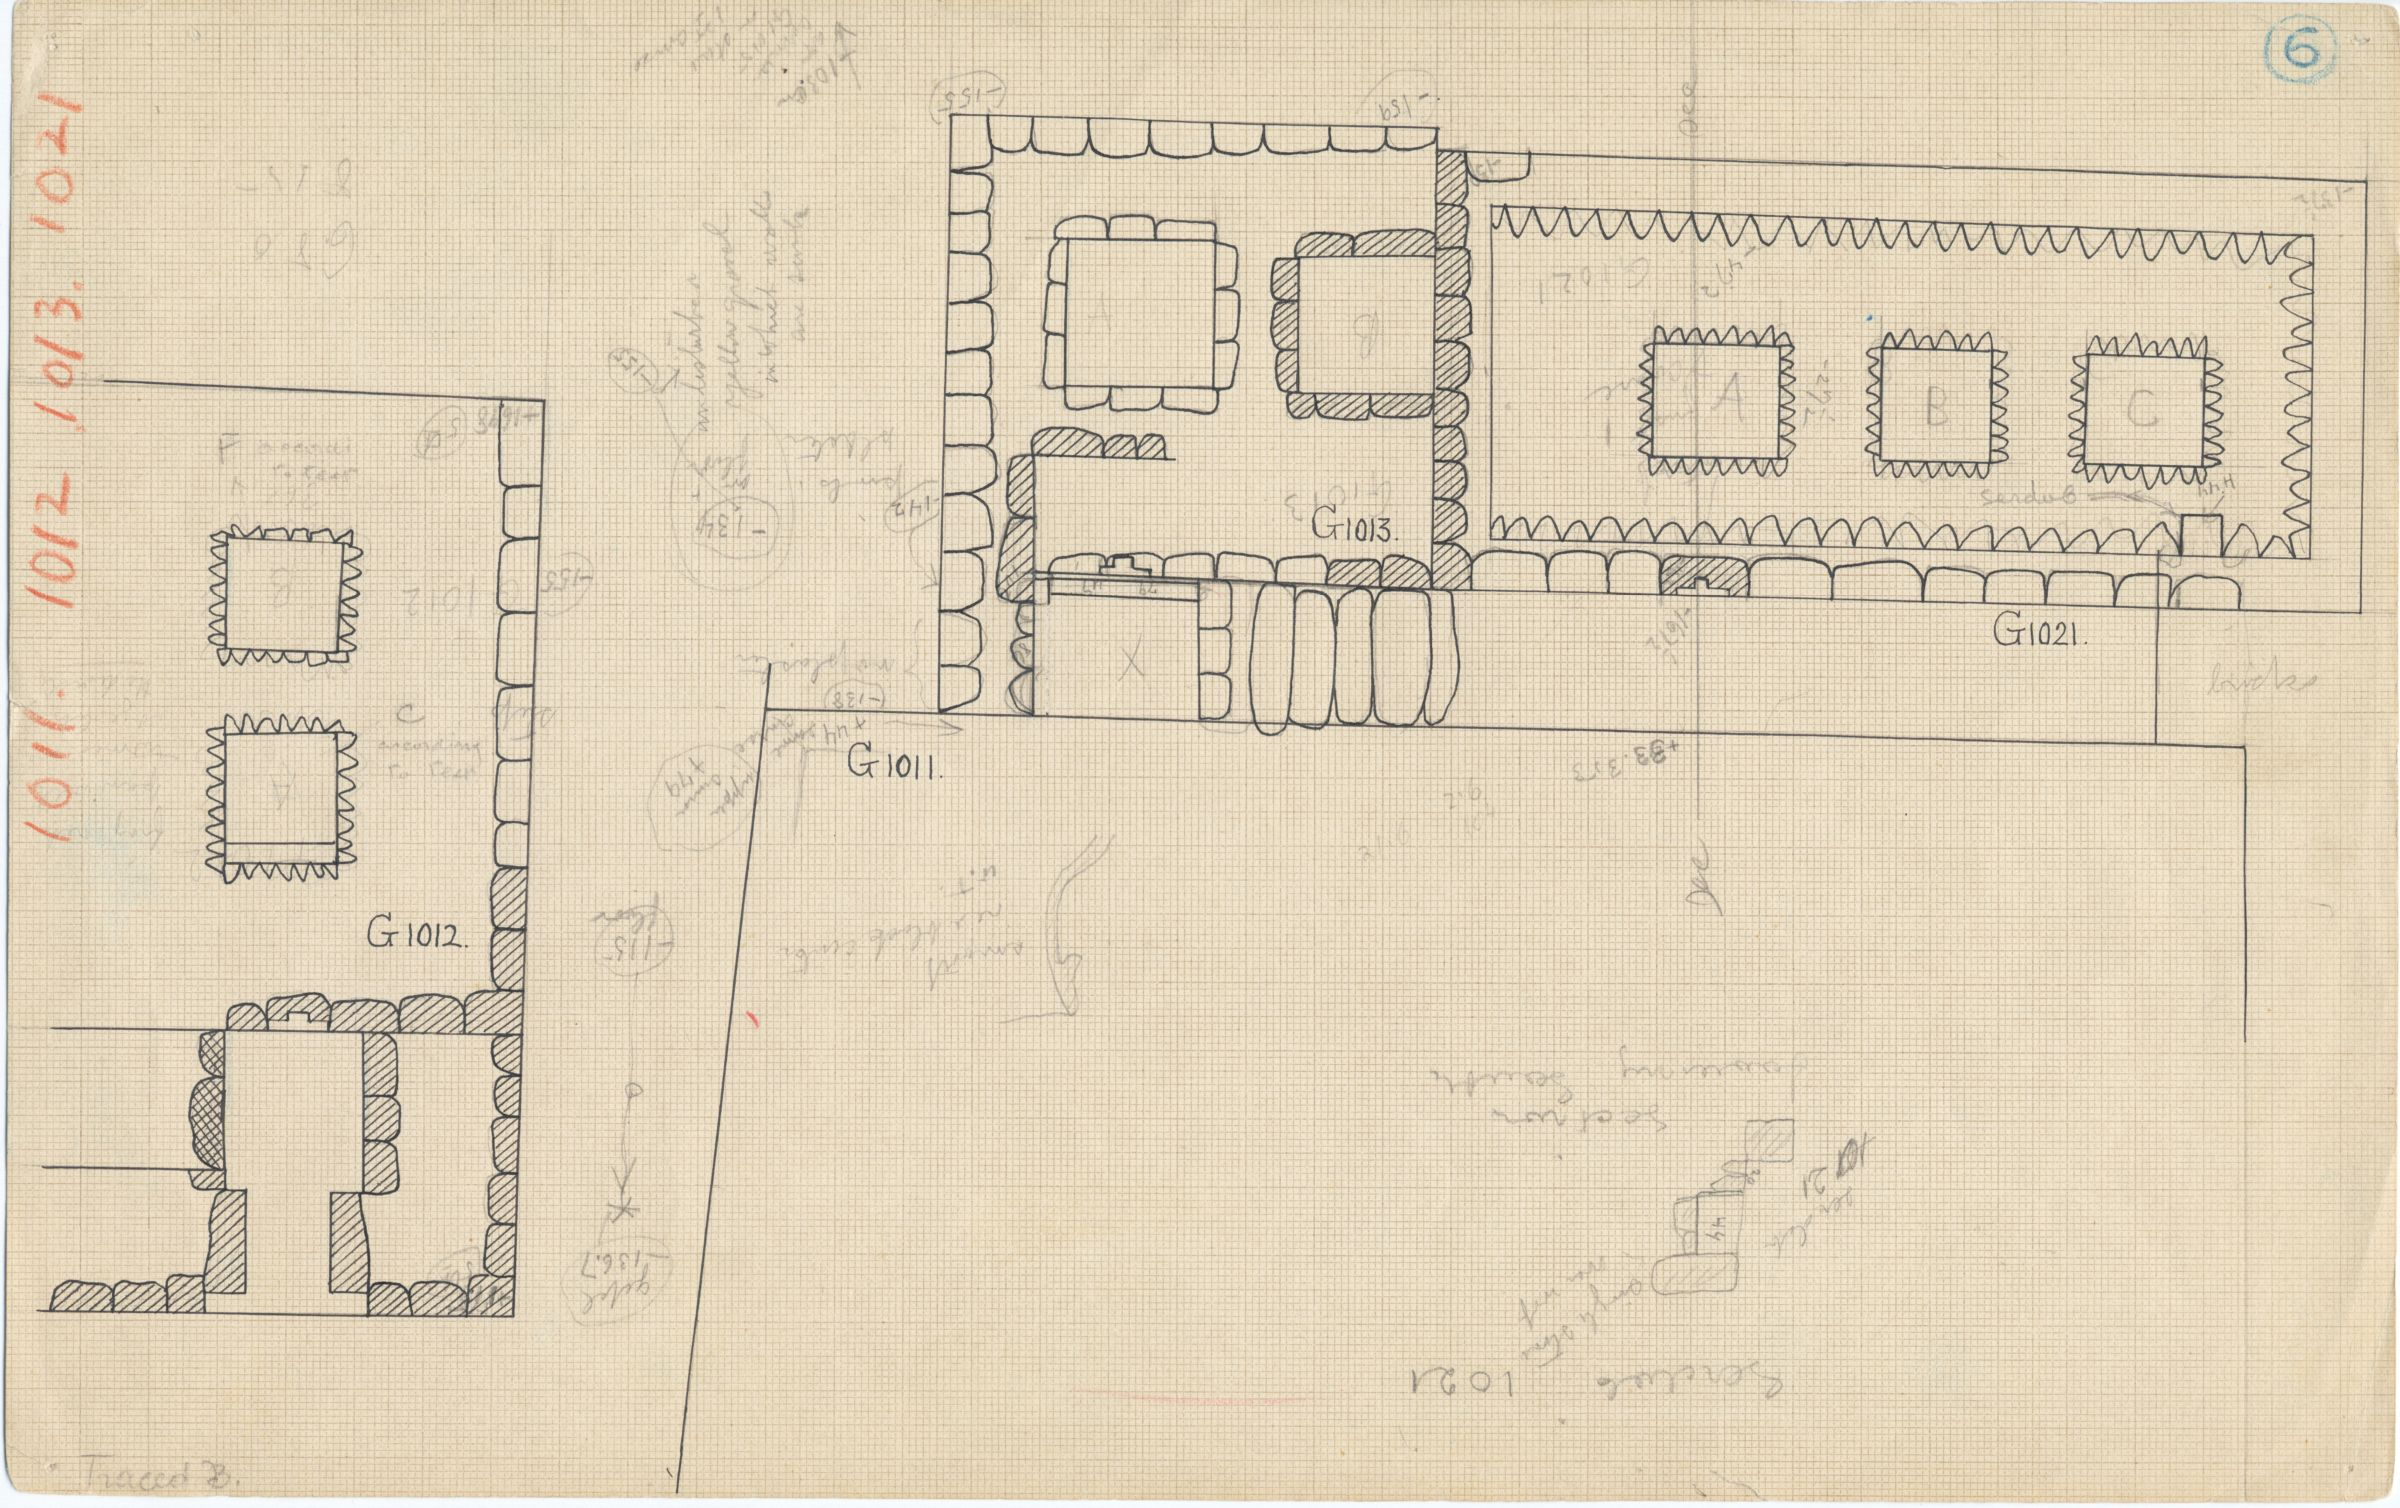 Maps and plans: Plan of G 1012 (partial), G 1013, G 1021, with position of G 1011